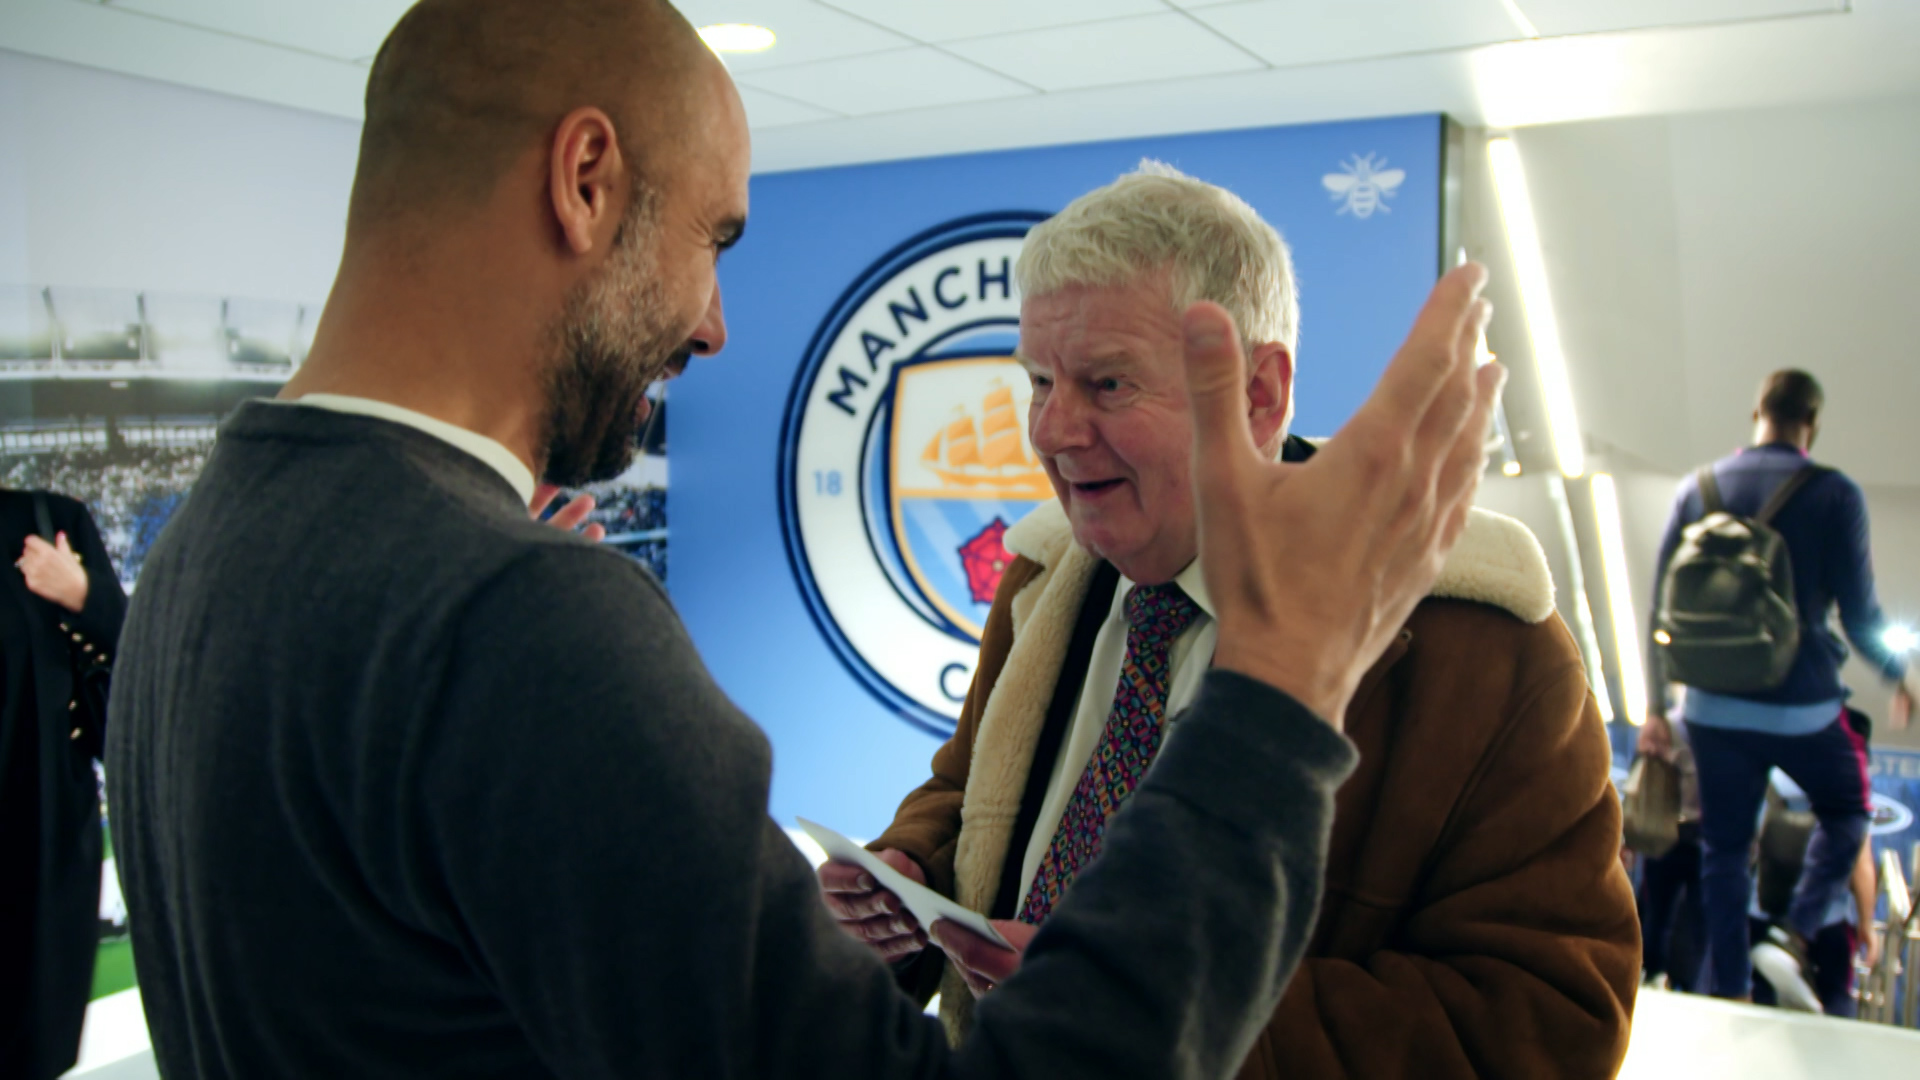 Motty: the man behind the sheepskin - John Motson meeting Pep Guardiola